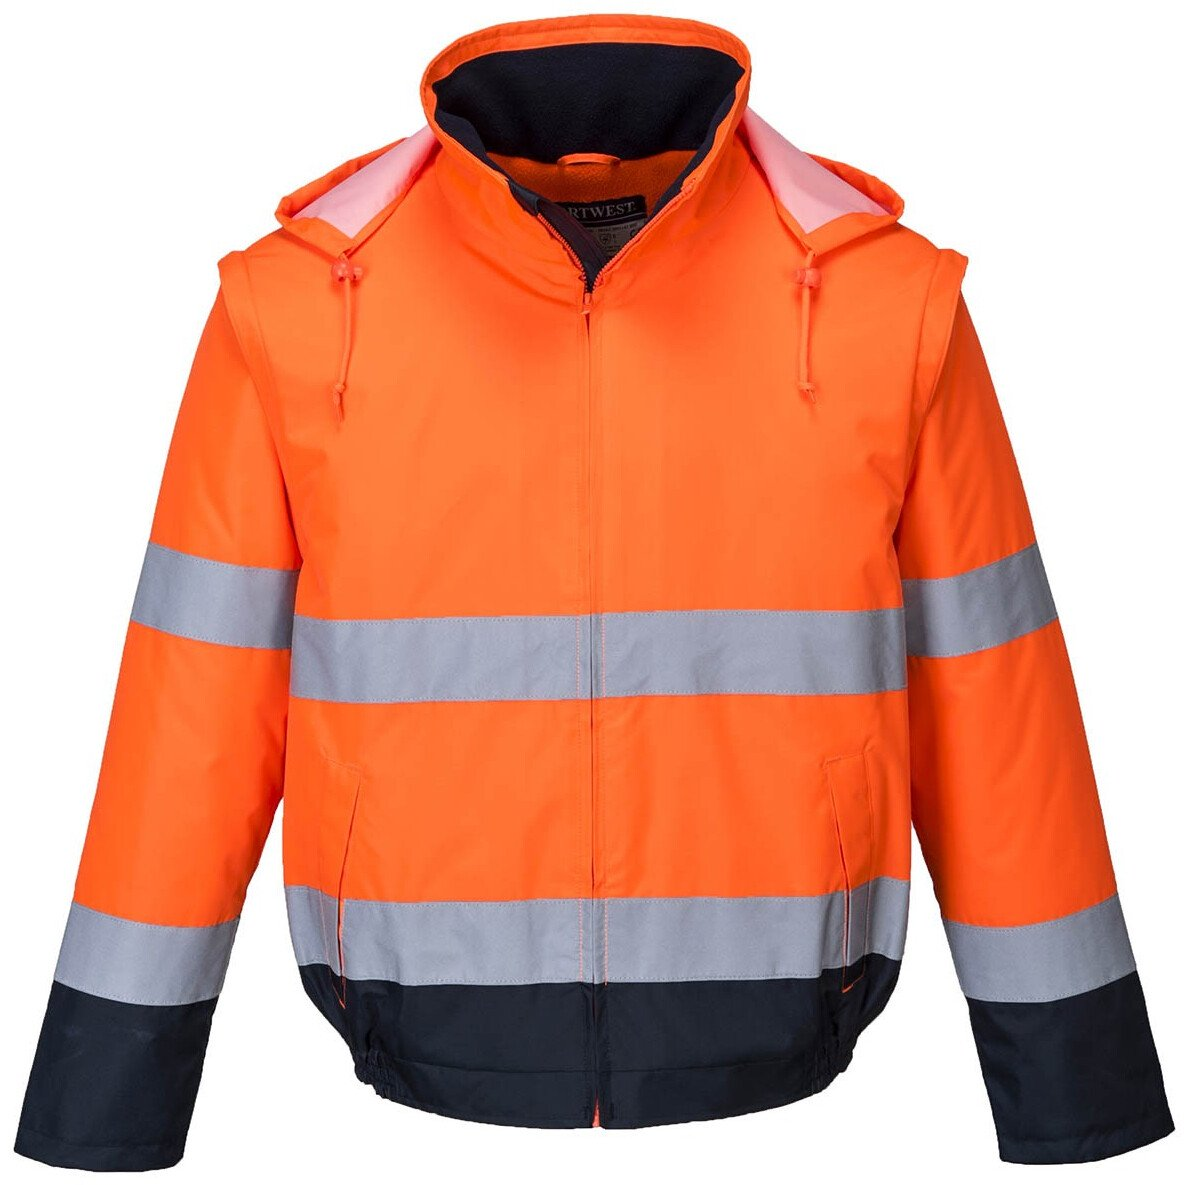 Portwest C464 Hi-Vis Essential 2-in-1 Jacket - Available in Orange or Yellow